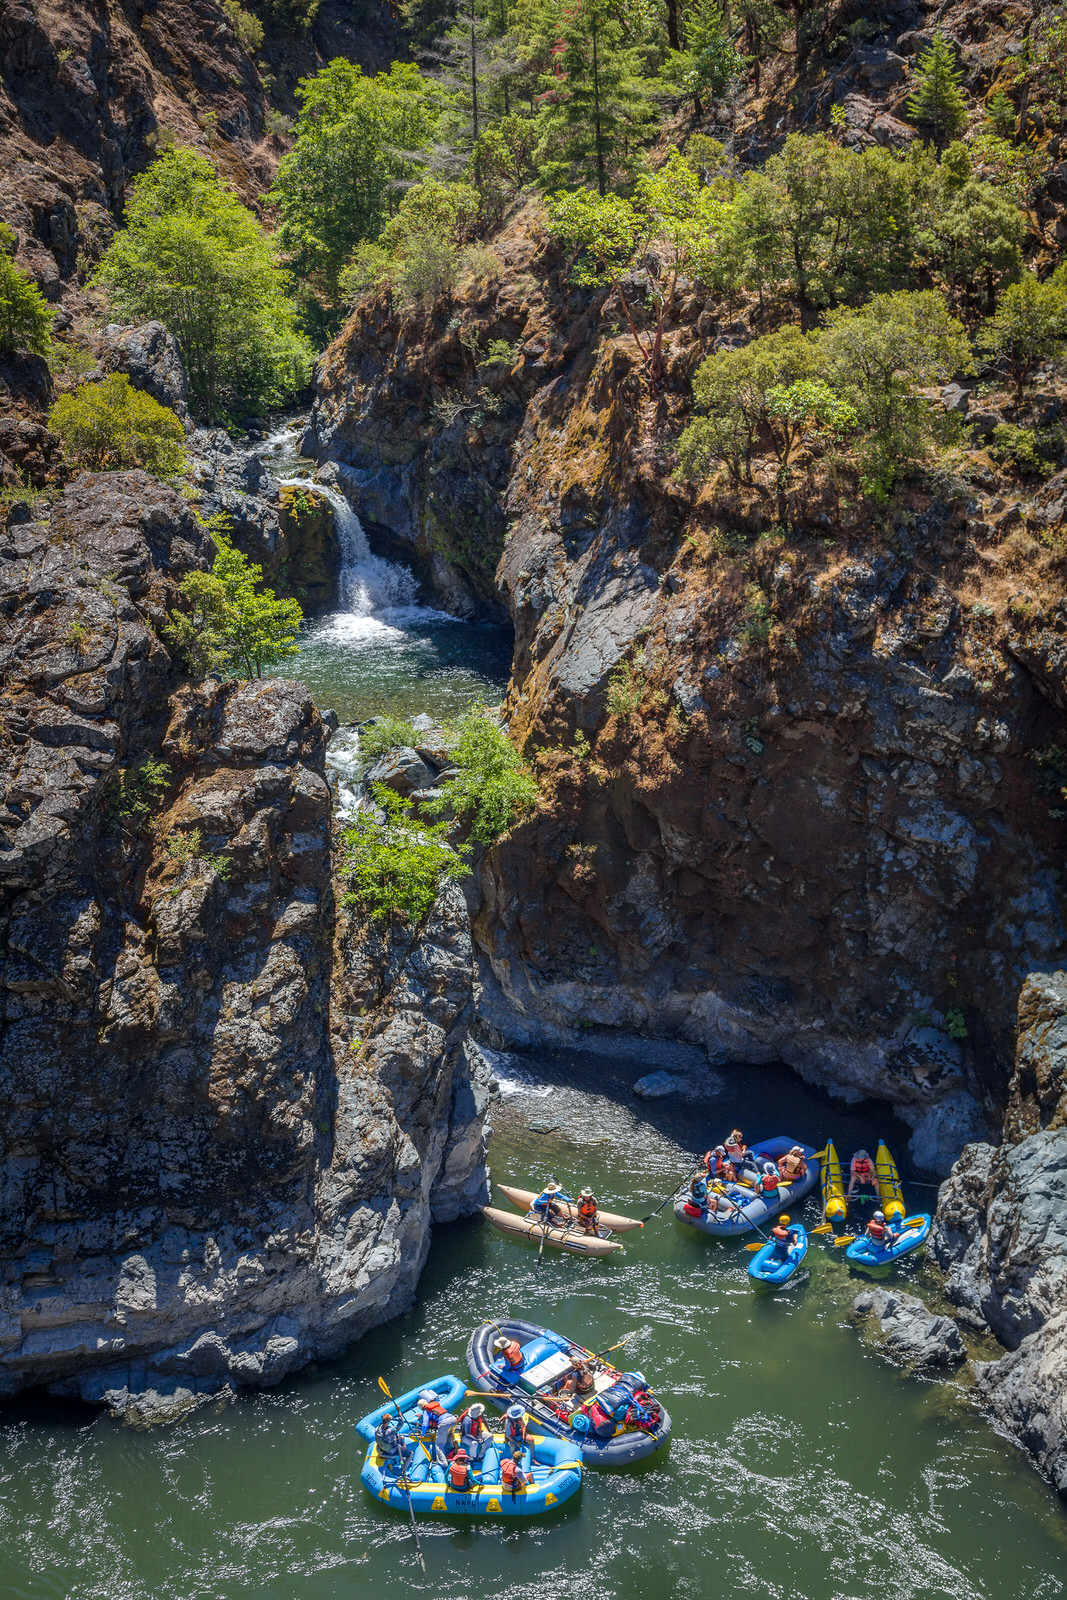 Rafters at Stair Creek Falls on the Rogue River